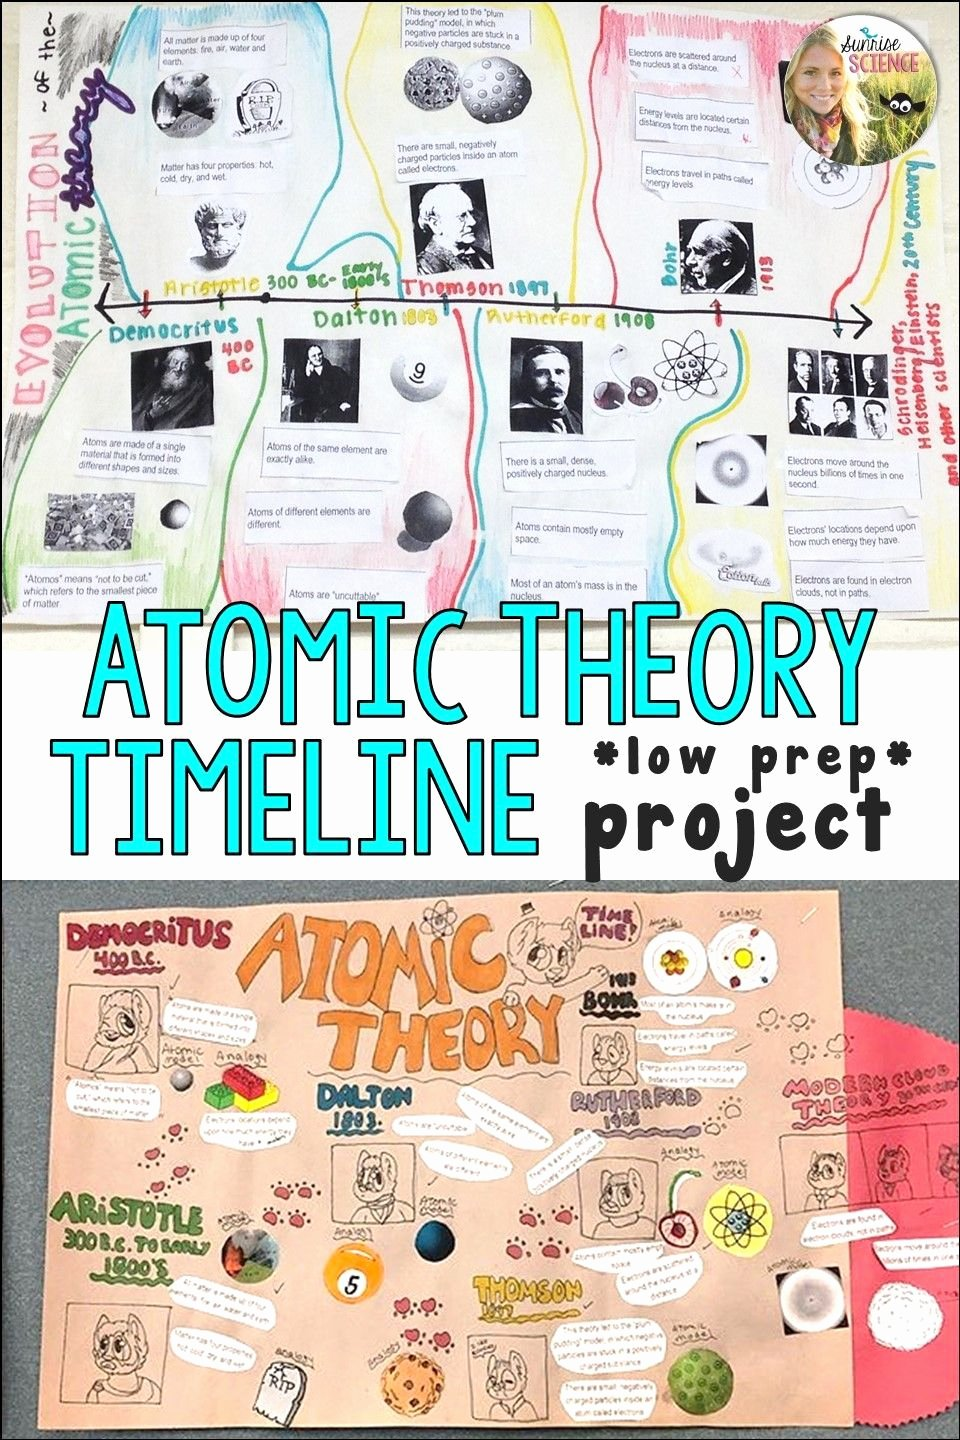 Development Of atomic theory Worksheet top atomic theory Timeline Project A Visual History Of the atom